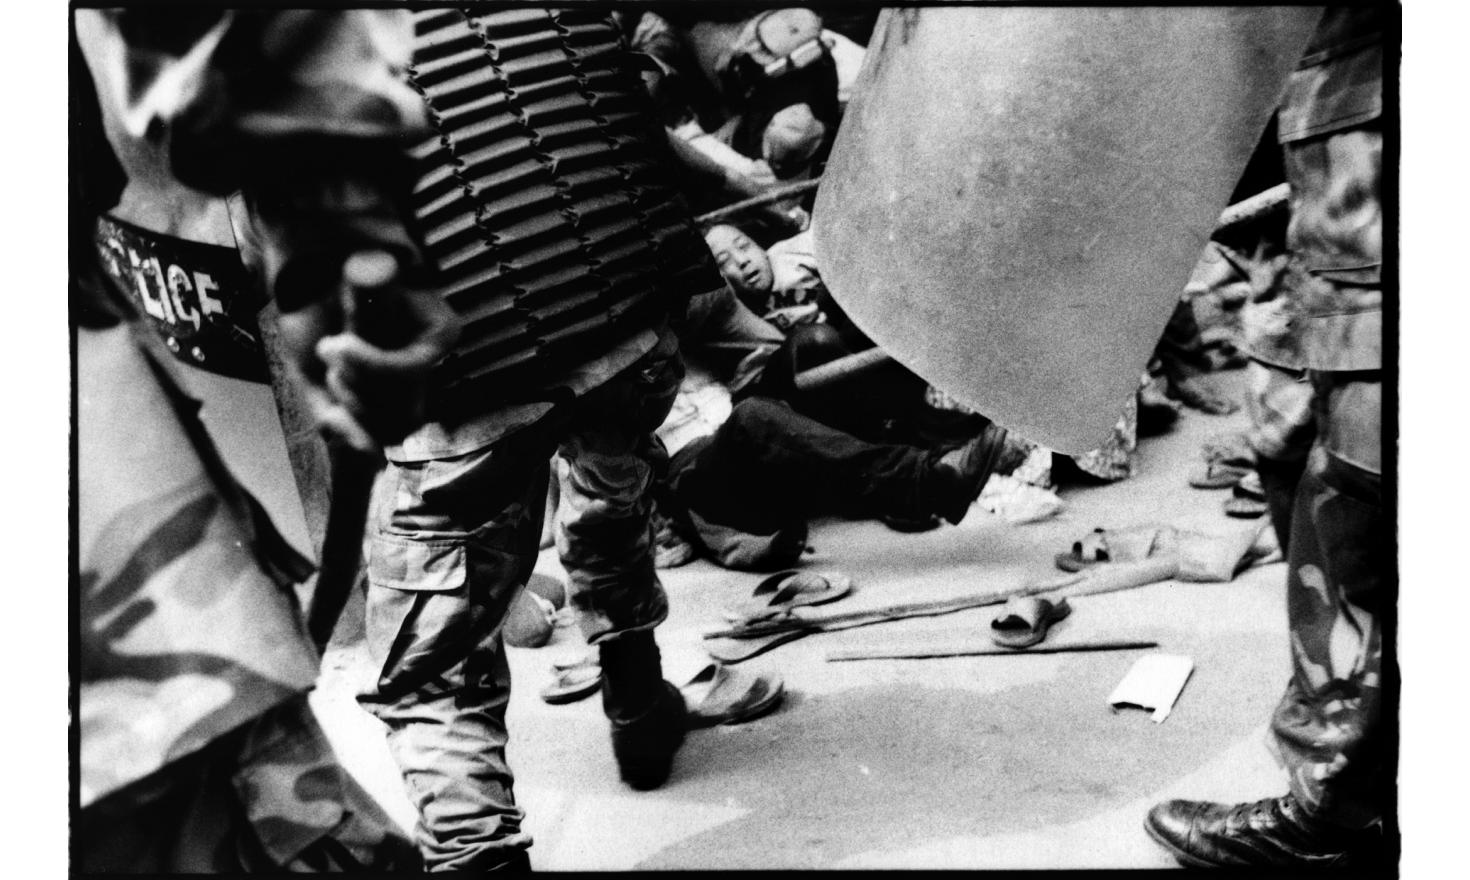 A woman is burried under other protestors bodies, while riot police keep beating them up with bamboo sticks, Katmandu Nepal 22d of April 2006